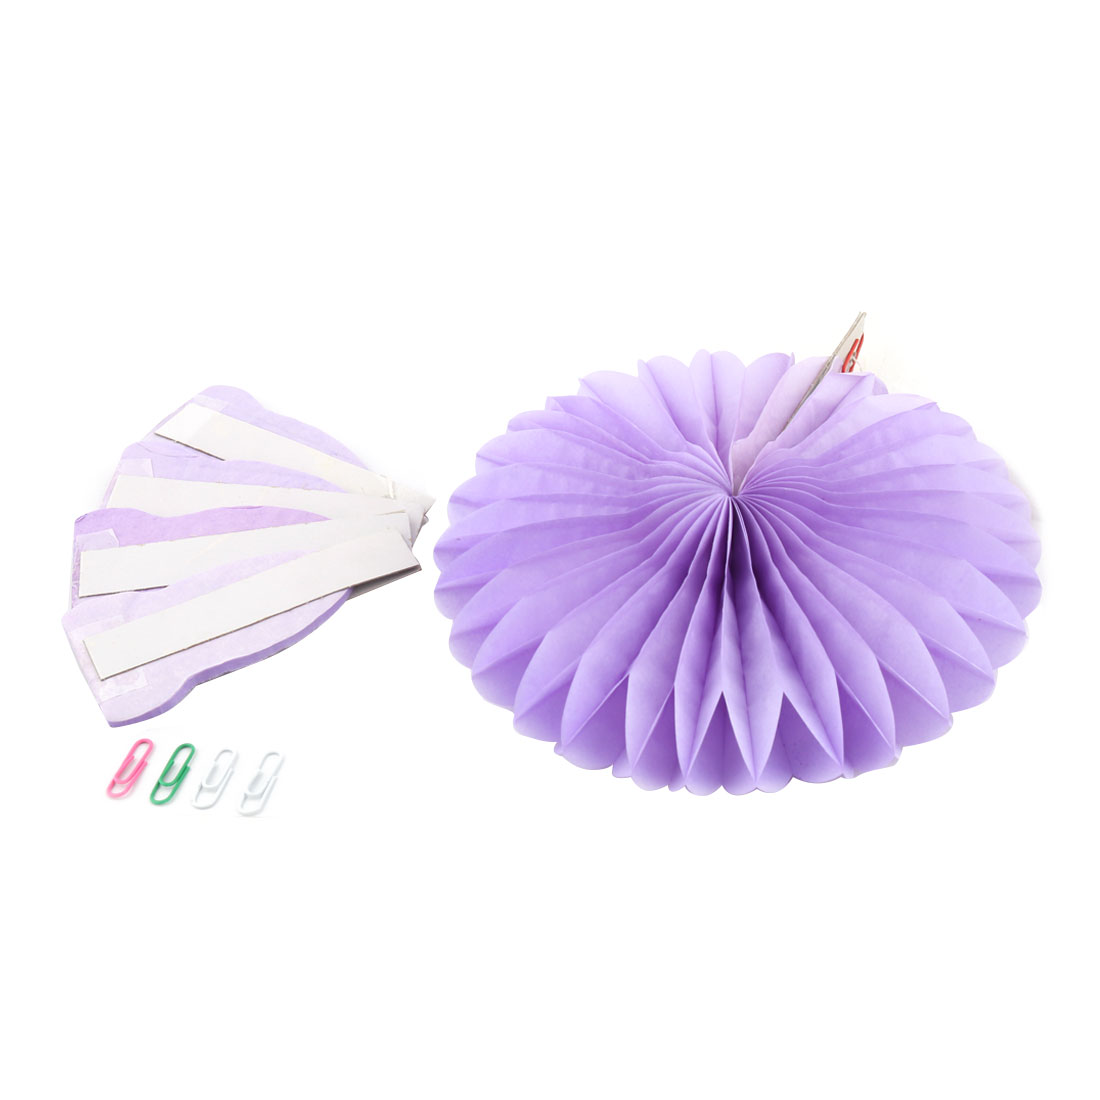 Tissue Paper Wedding Party Hanging Decoration Wheel Fan Honeycomb Flower Light Purple 5pcs